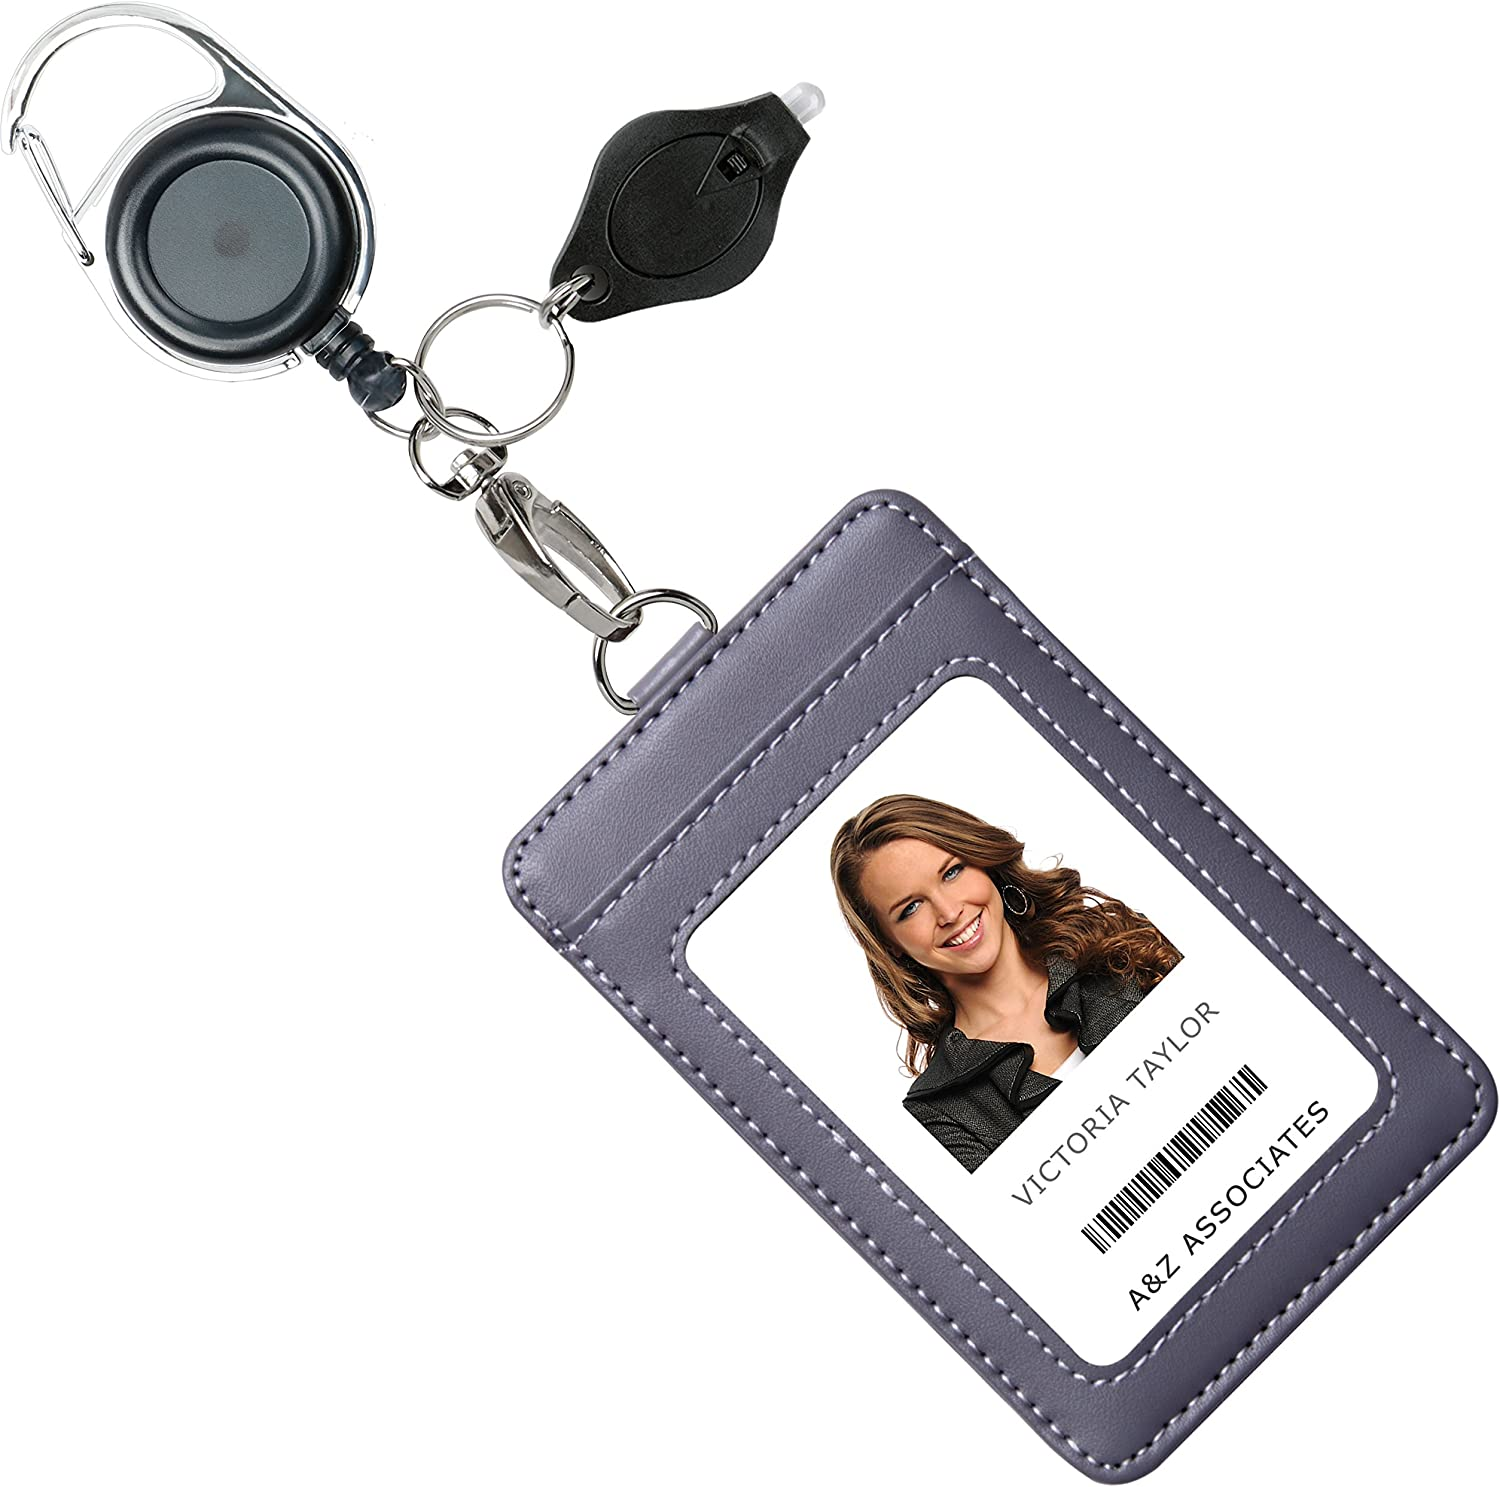 Card Anti-Lost Clip Office Supplies Retractable Key Ring Lanyards Badge Holder